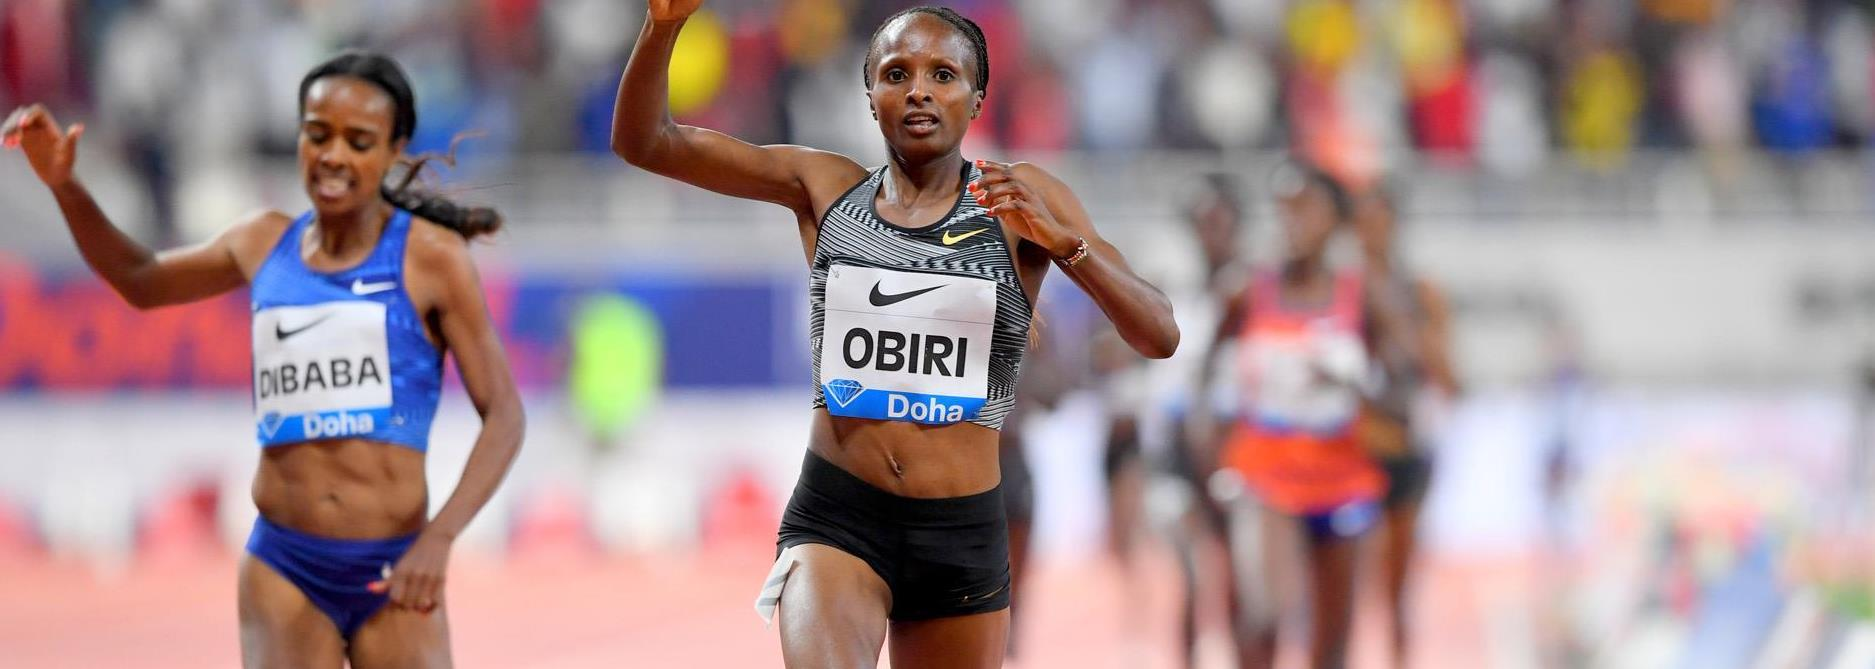 Doha provisional entry lists, as at 21 September